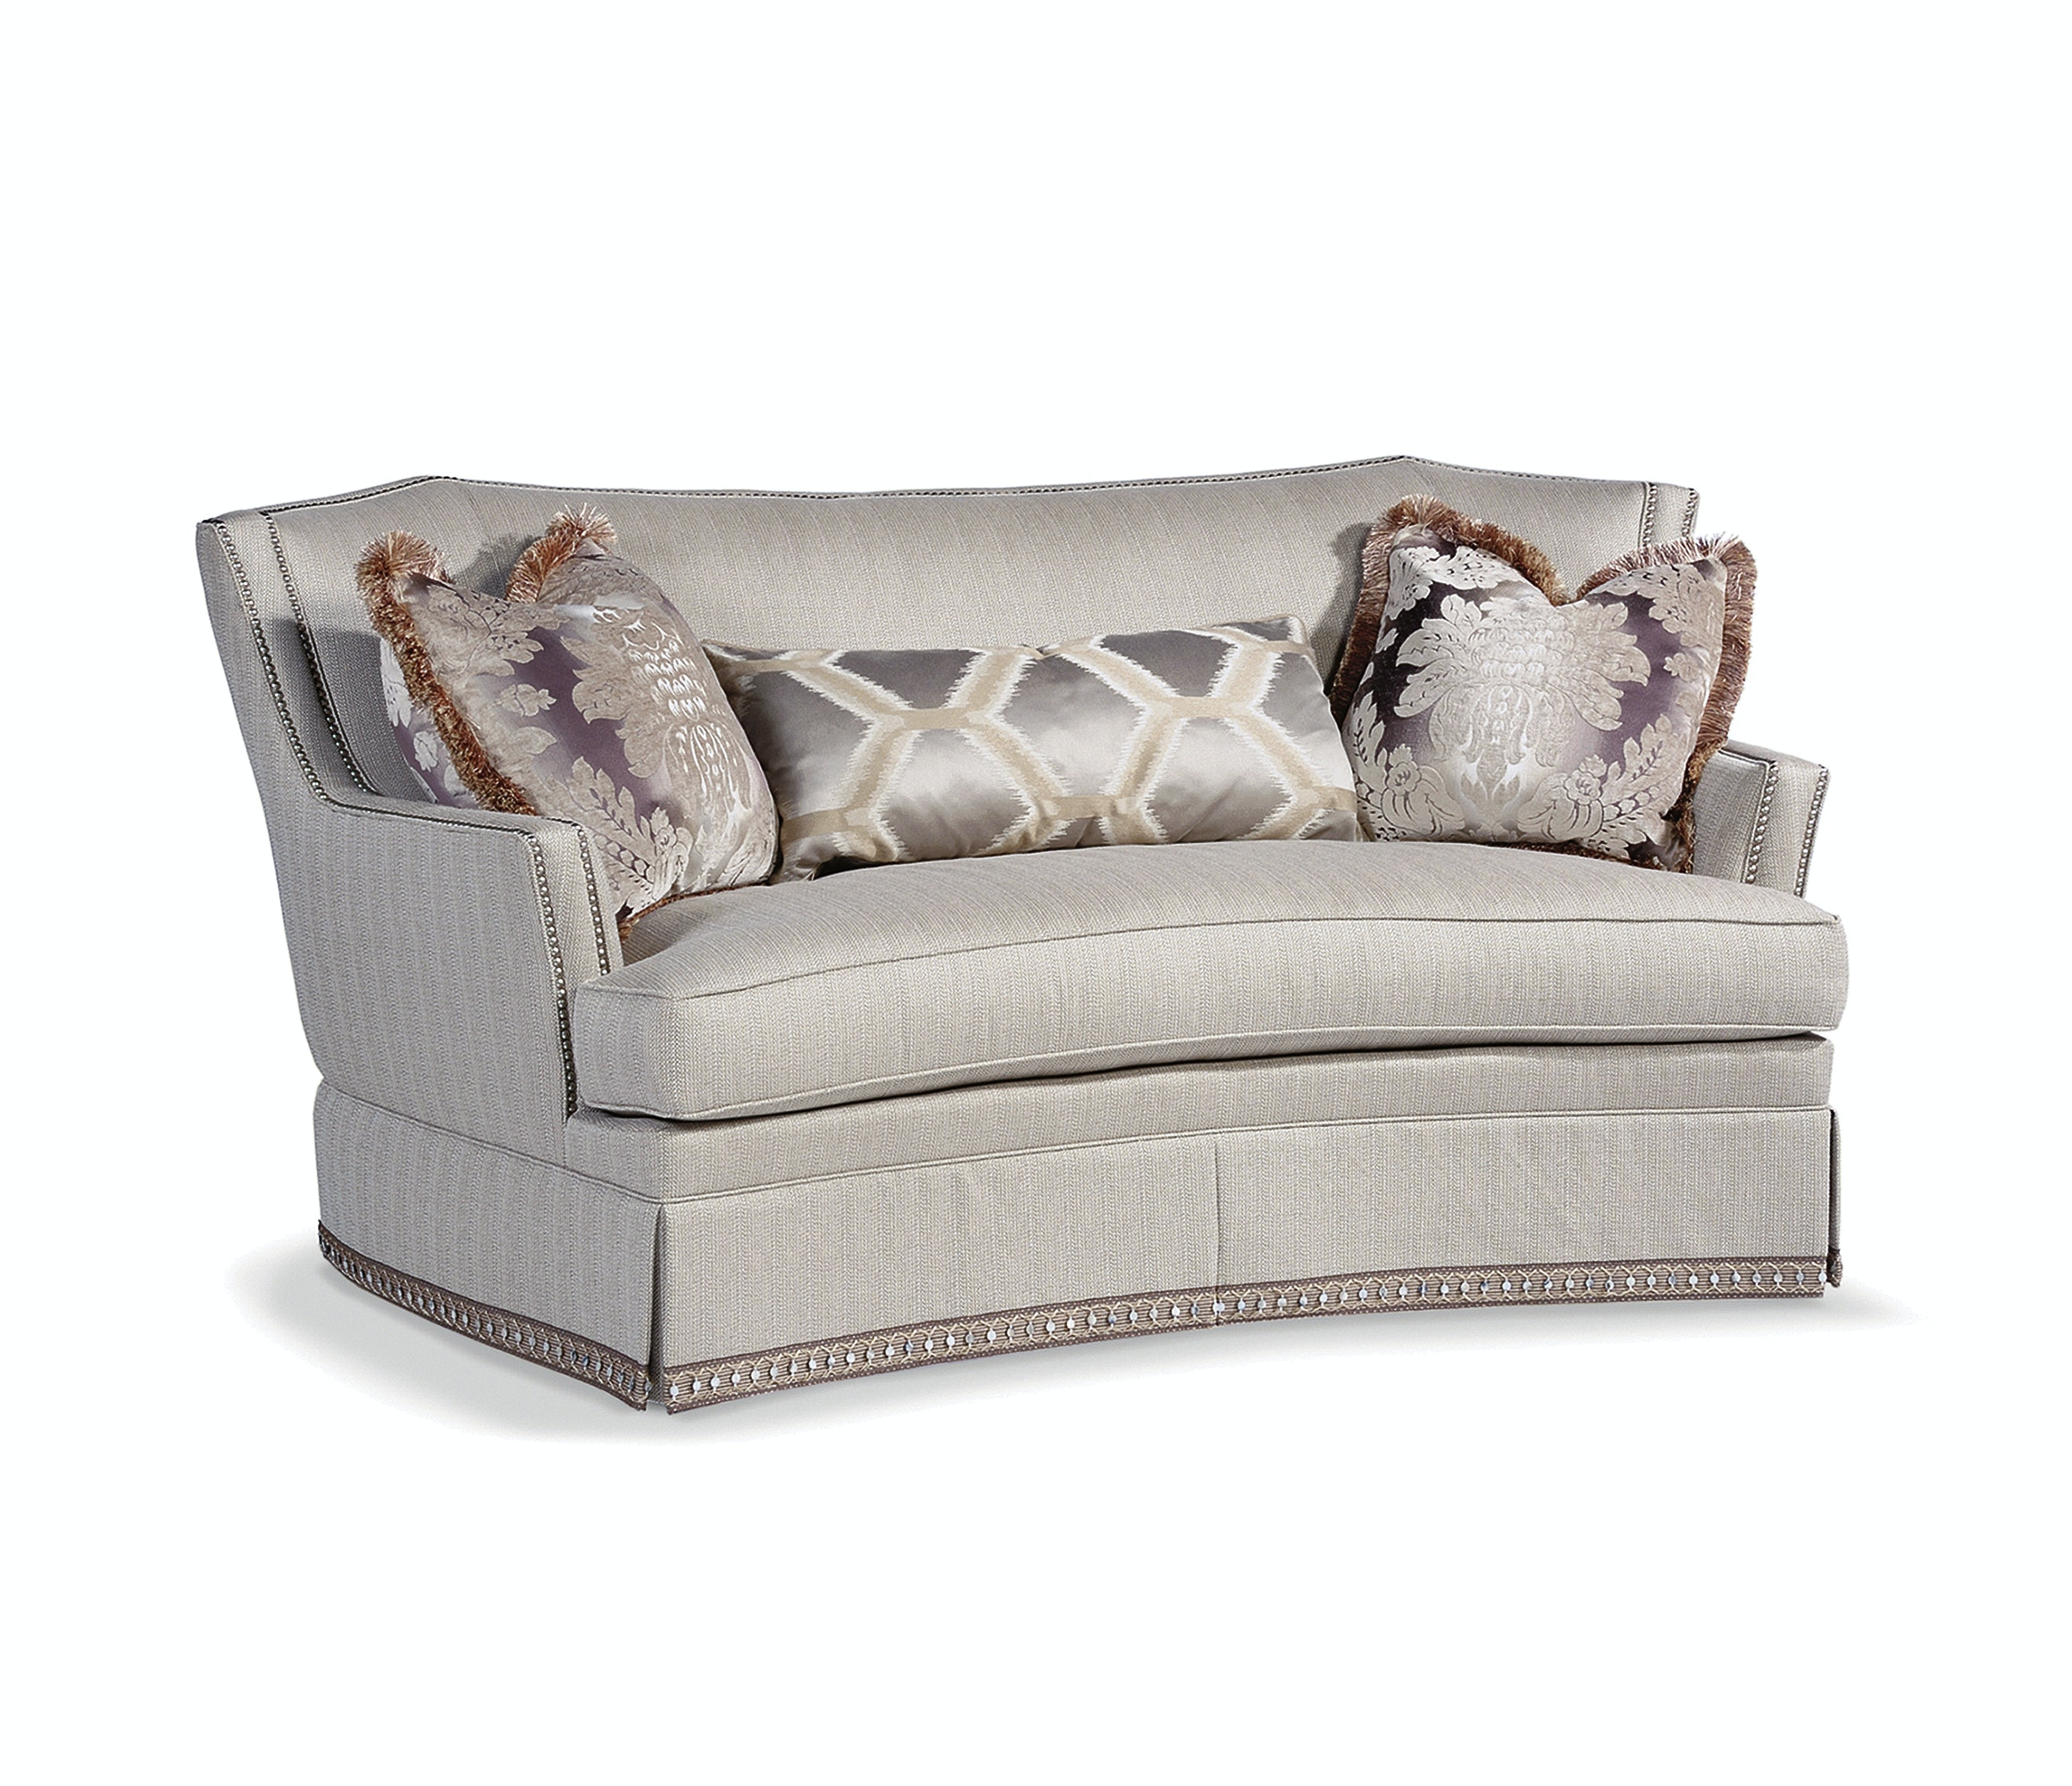 Taylor King Furniture Furniture Goods Home Furnishings North